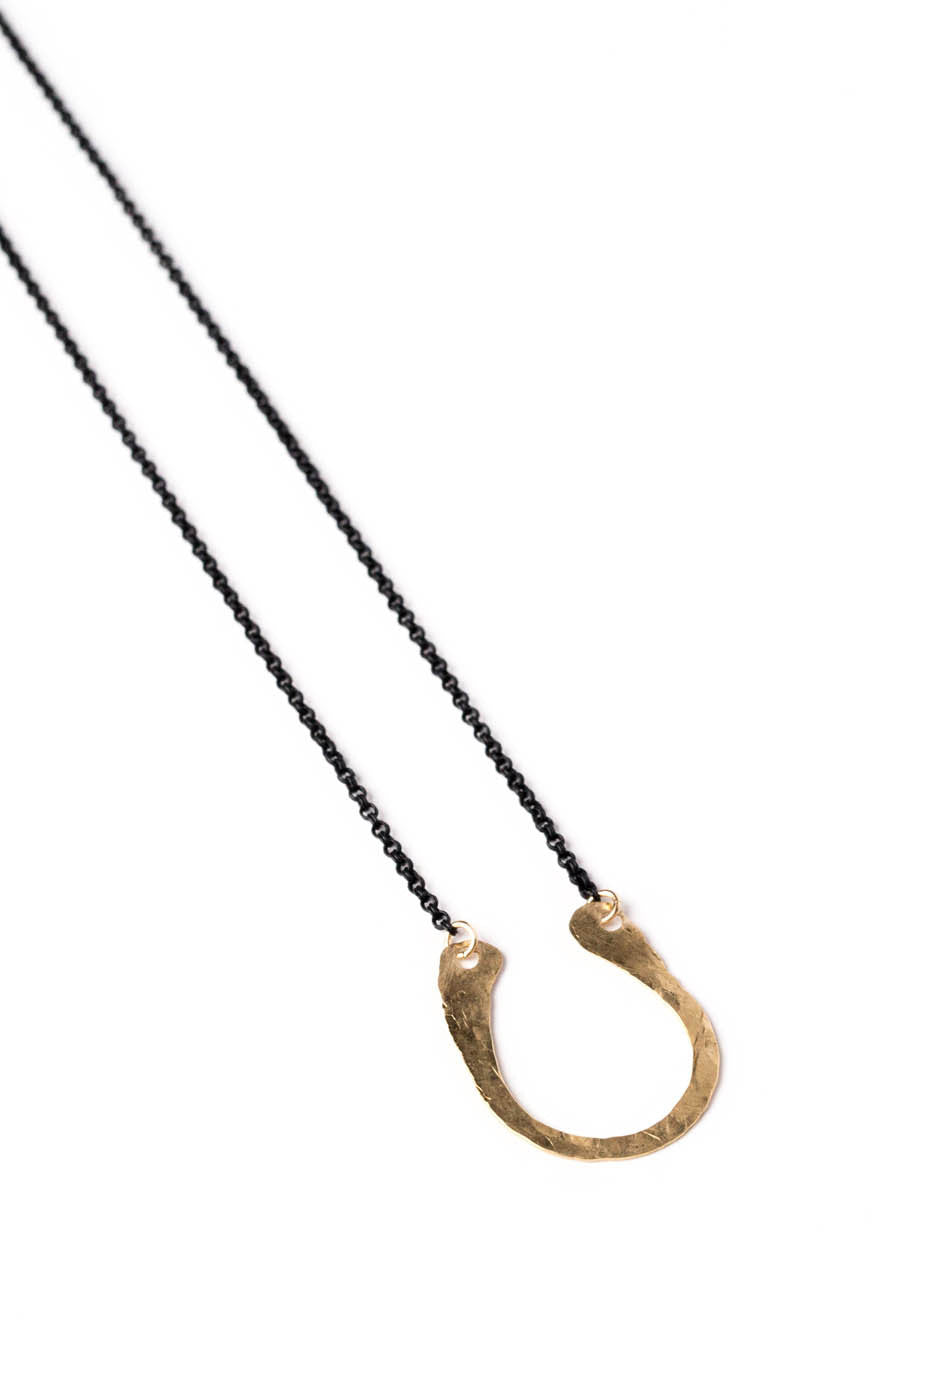 Horseshoe Hammered Goldfill Necklace (Black Chain)